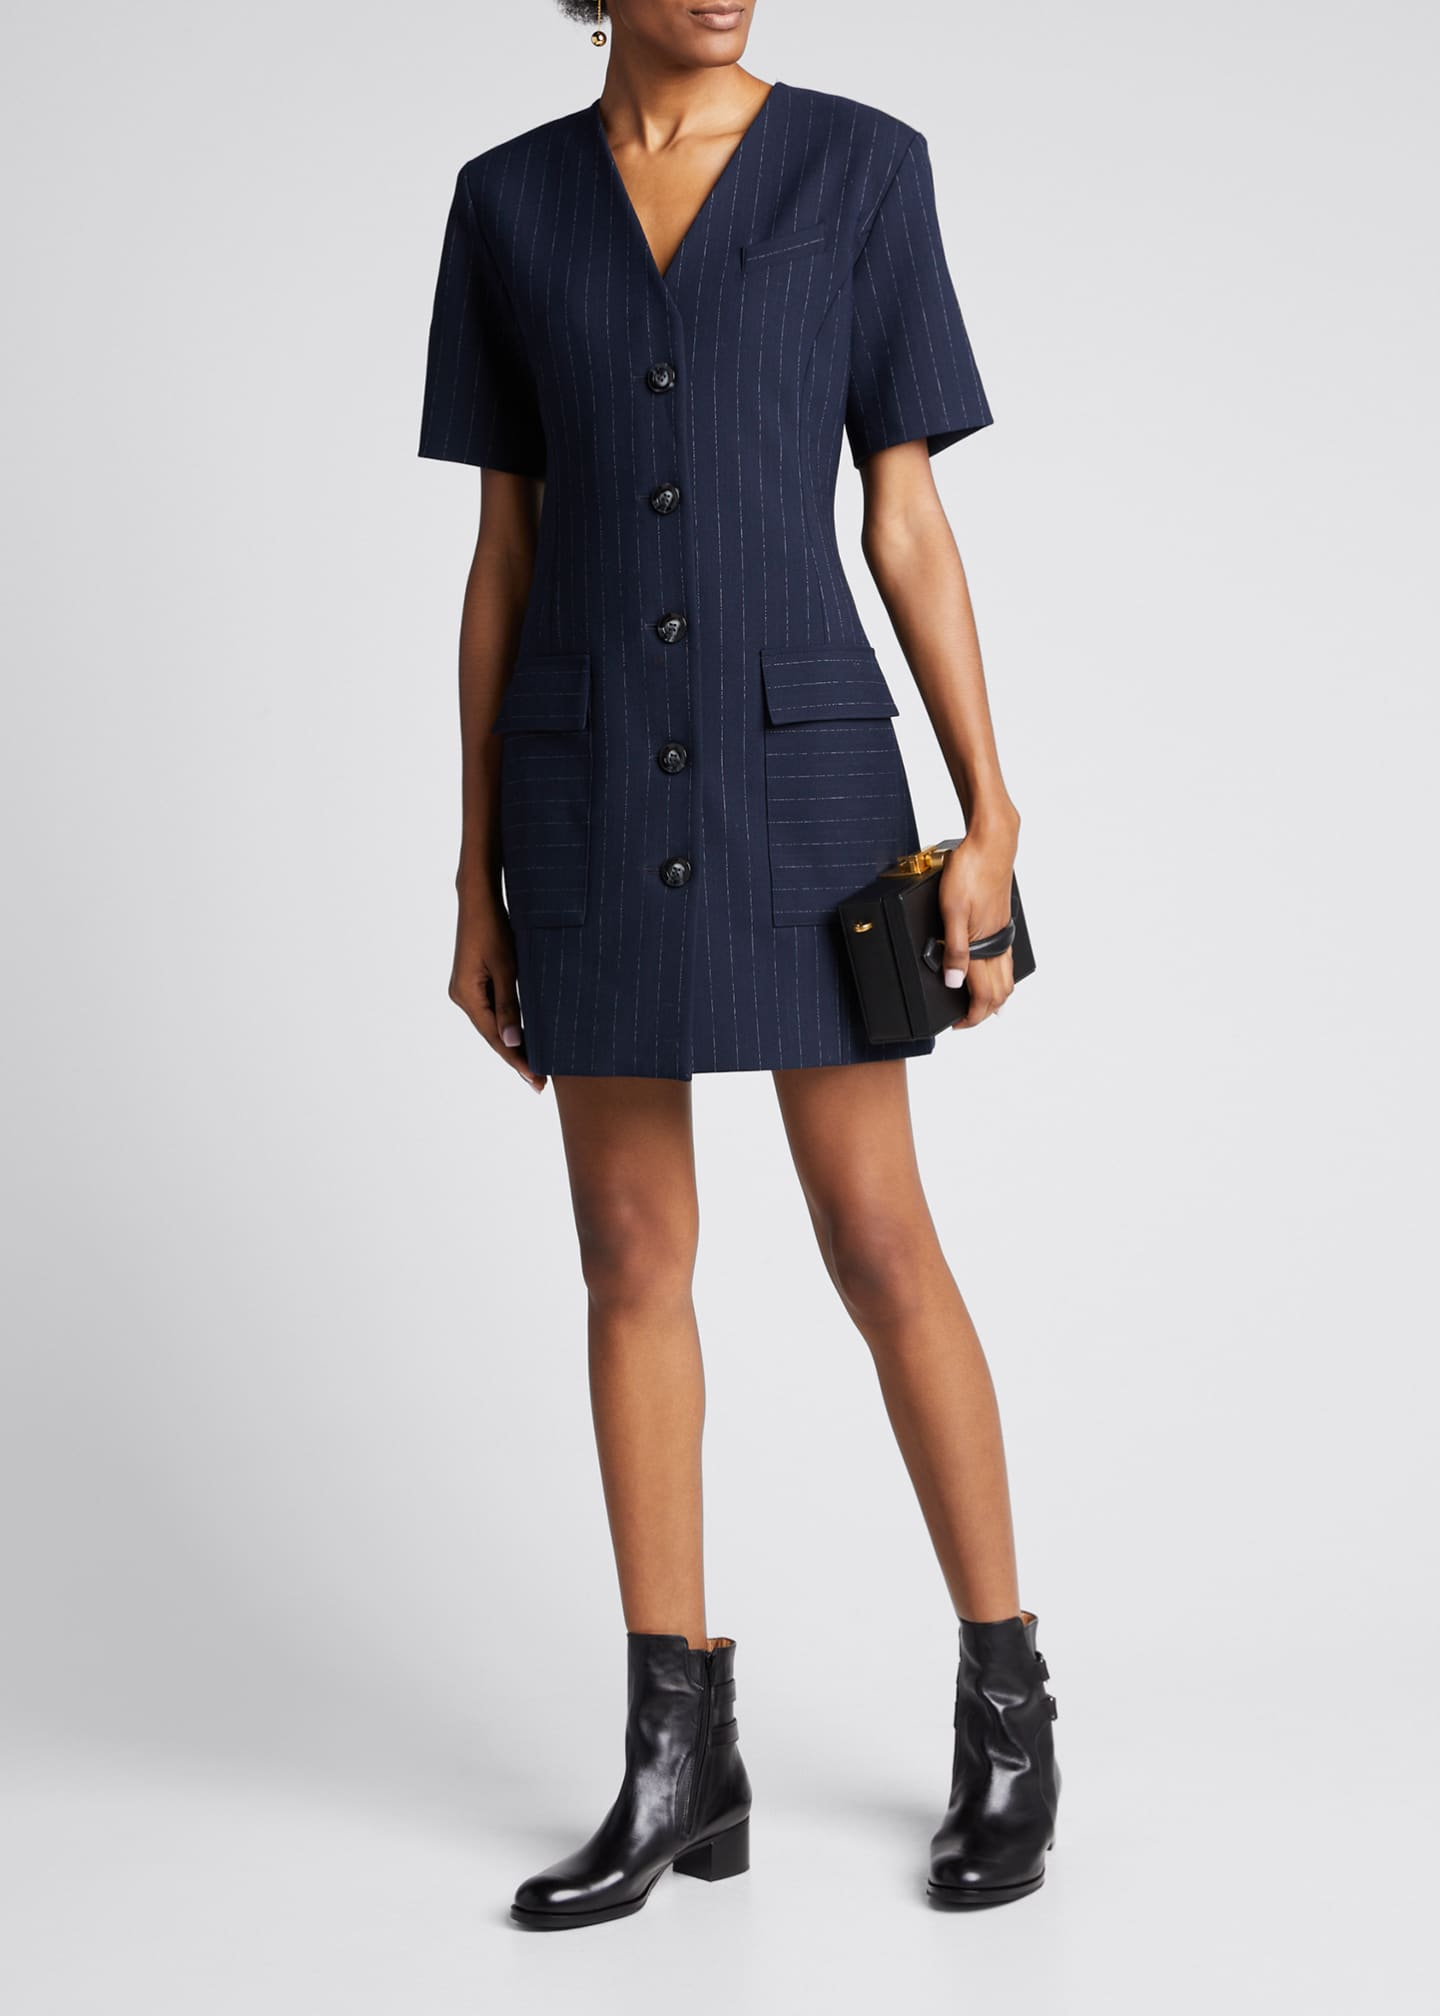 Anna Quan Portia Pinstripe Short-Sleeve Button-Front Dress